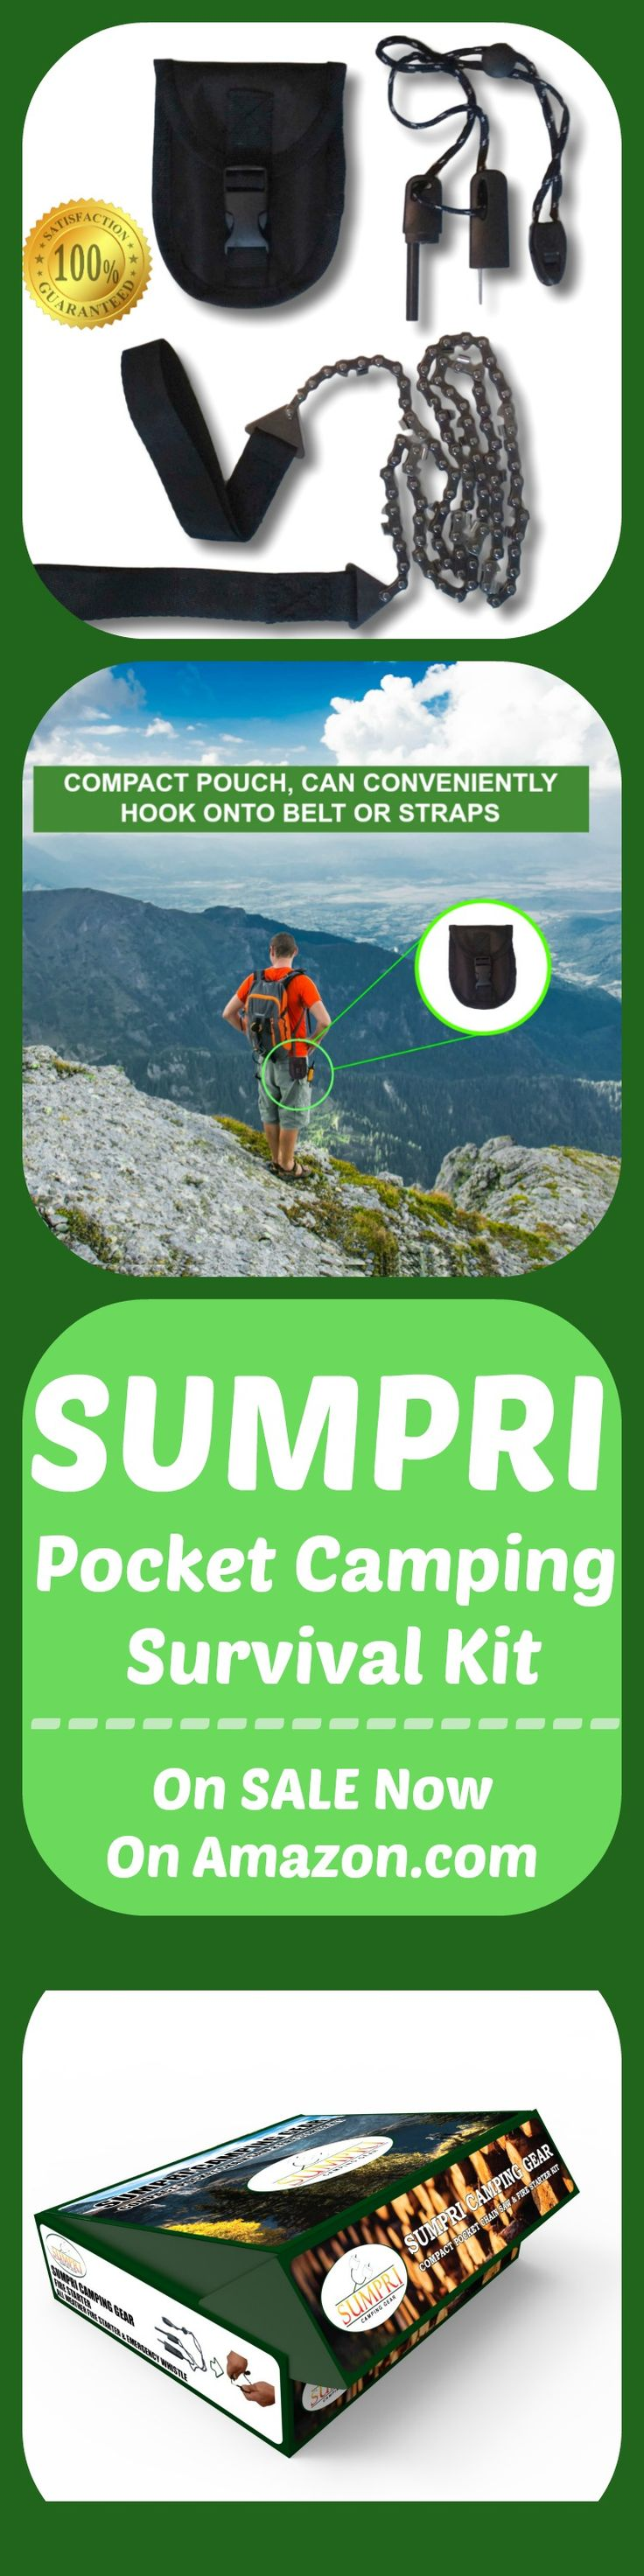 SUMPRI Camping Gear Pocket Chainsaw & Fire Starter Kit - 36 Inch Compact Hand Saw & Magnesium Spark Fire Rod -Best For Hiking, Survival & Emergency Equipment, Now on Amazon.com #sumpri #pocket #chainsaw #camping #gear #fire #starter #rod #logs #garden #log #tree #boyscout